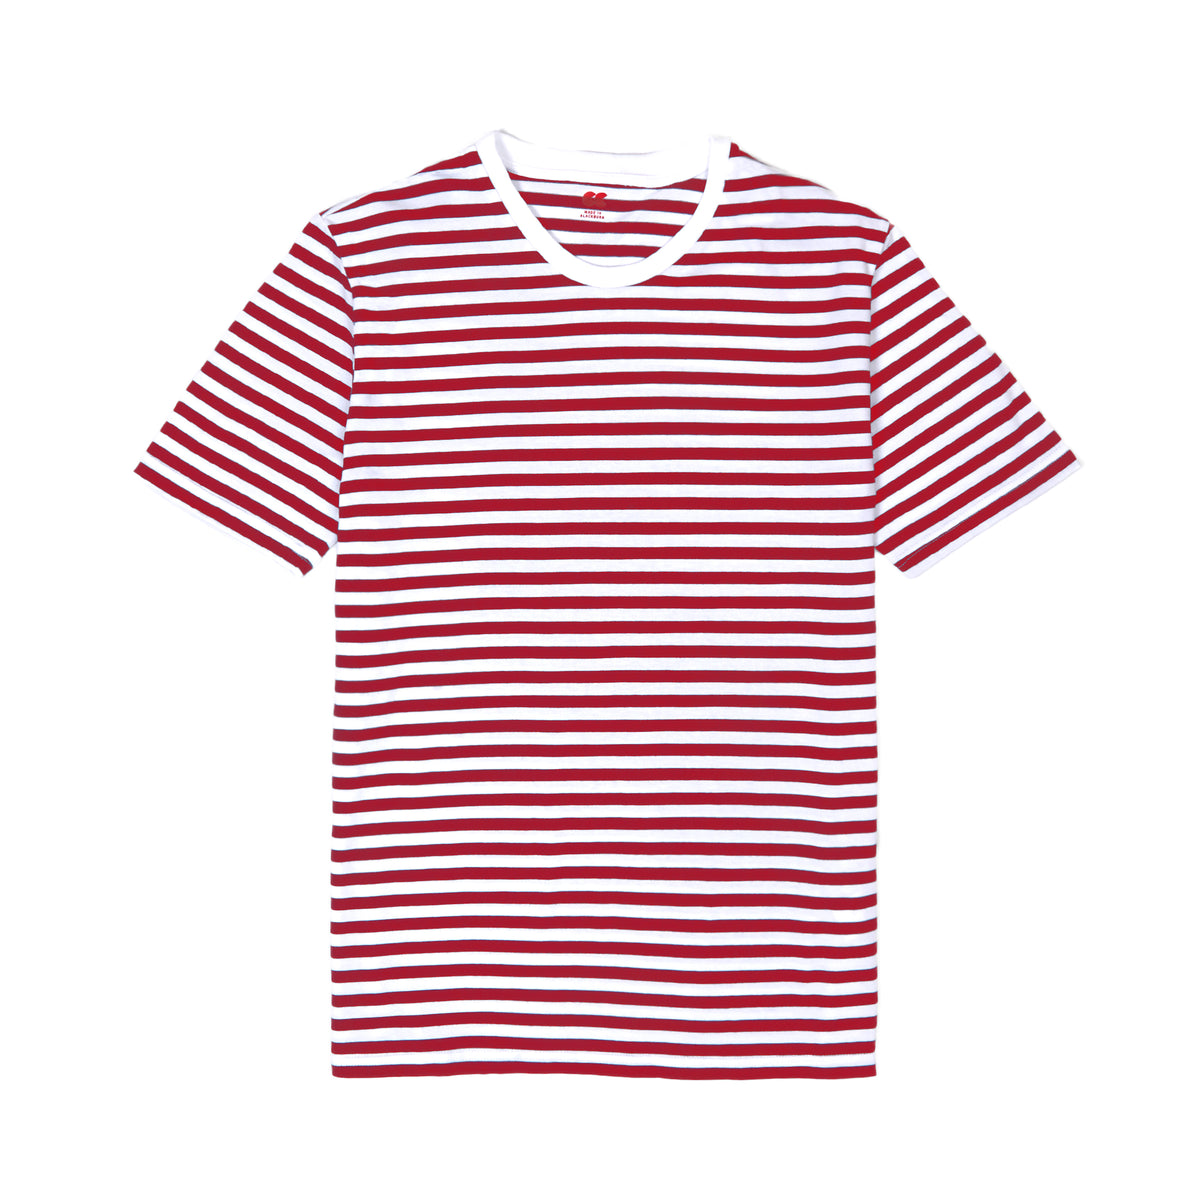 Women's Short Sleeve Stripe T-Shirt Red/White - Community Clothing